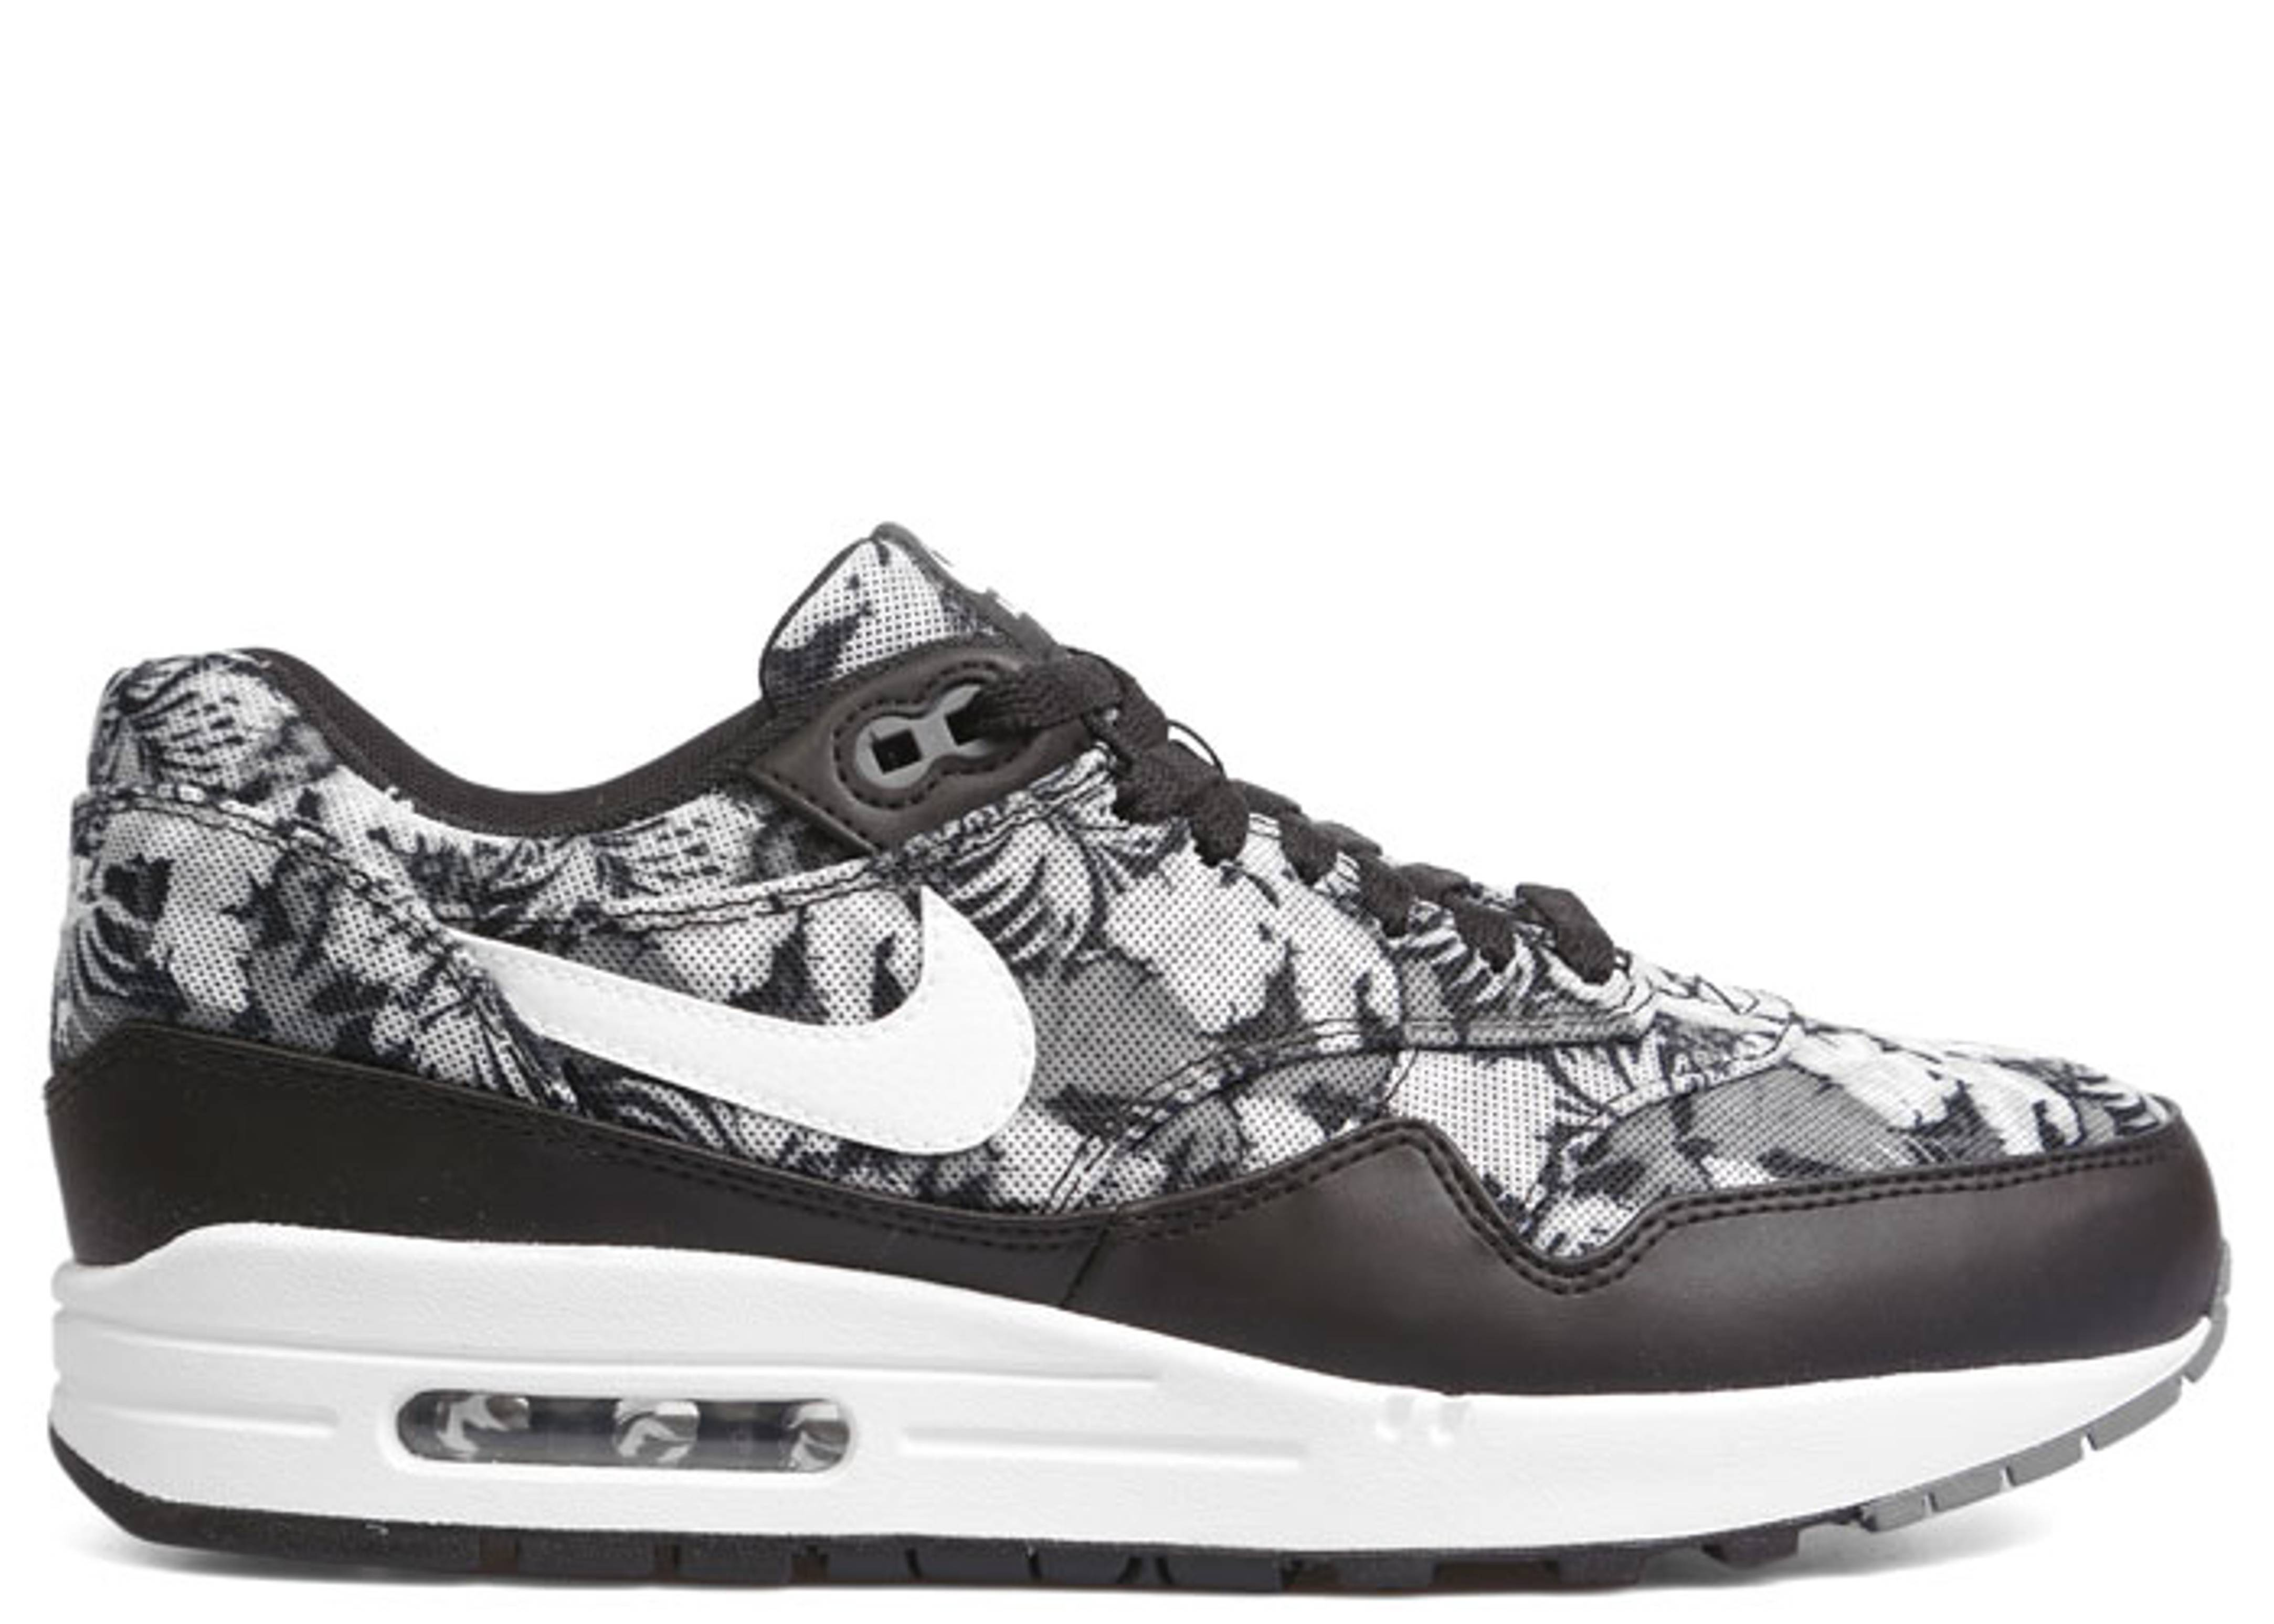 Air Max 1 Gpx Blk Wht Drk Gry